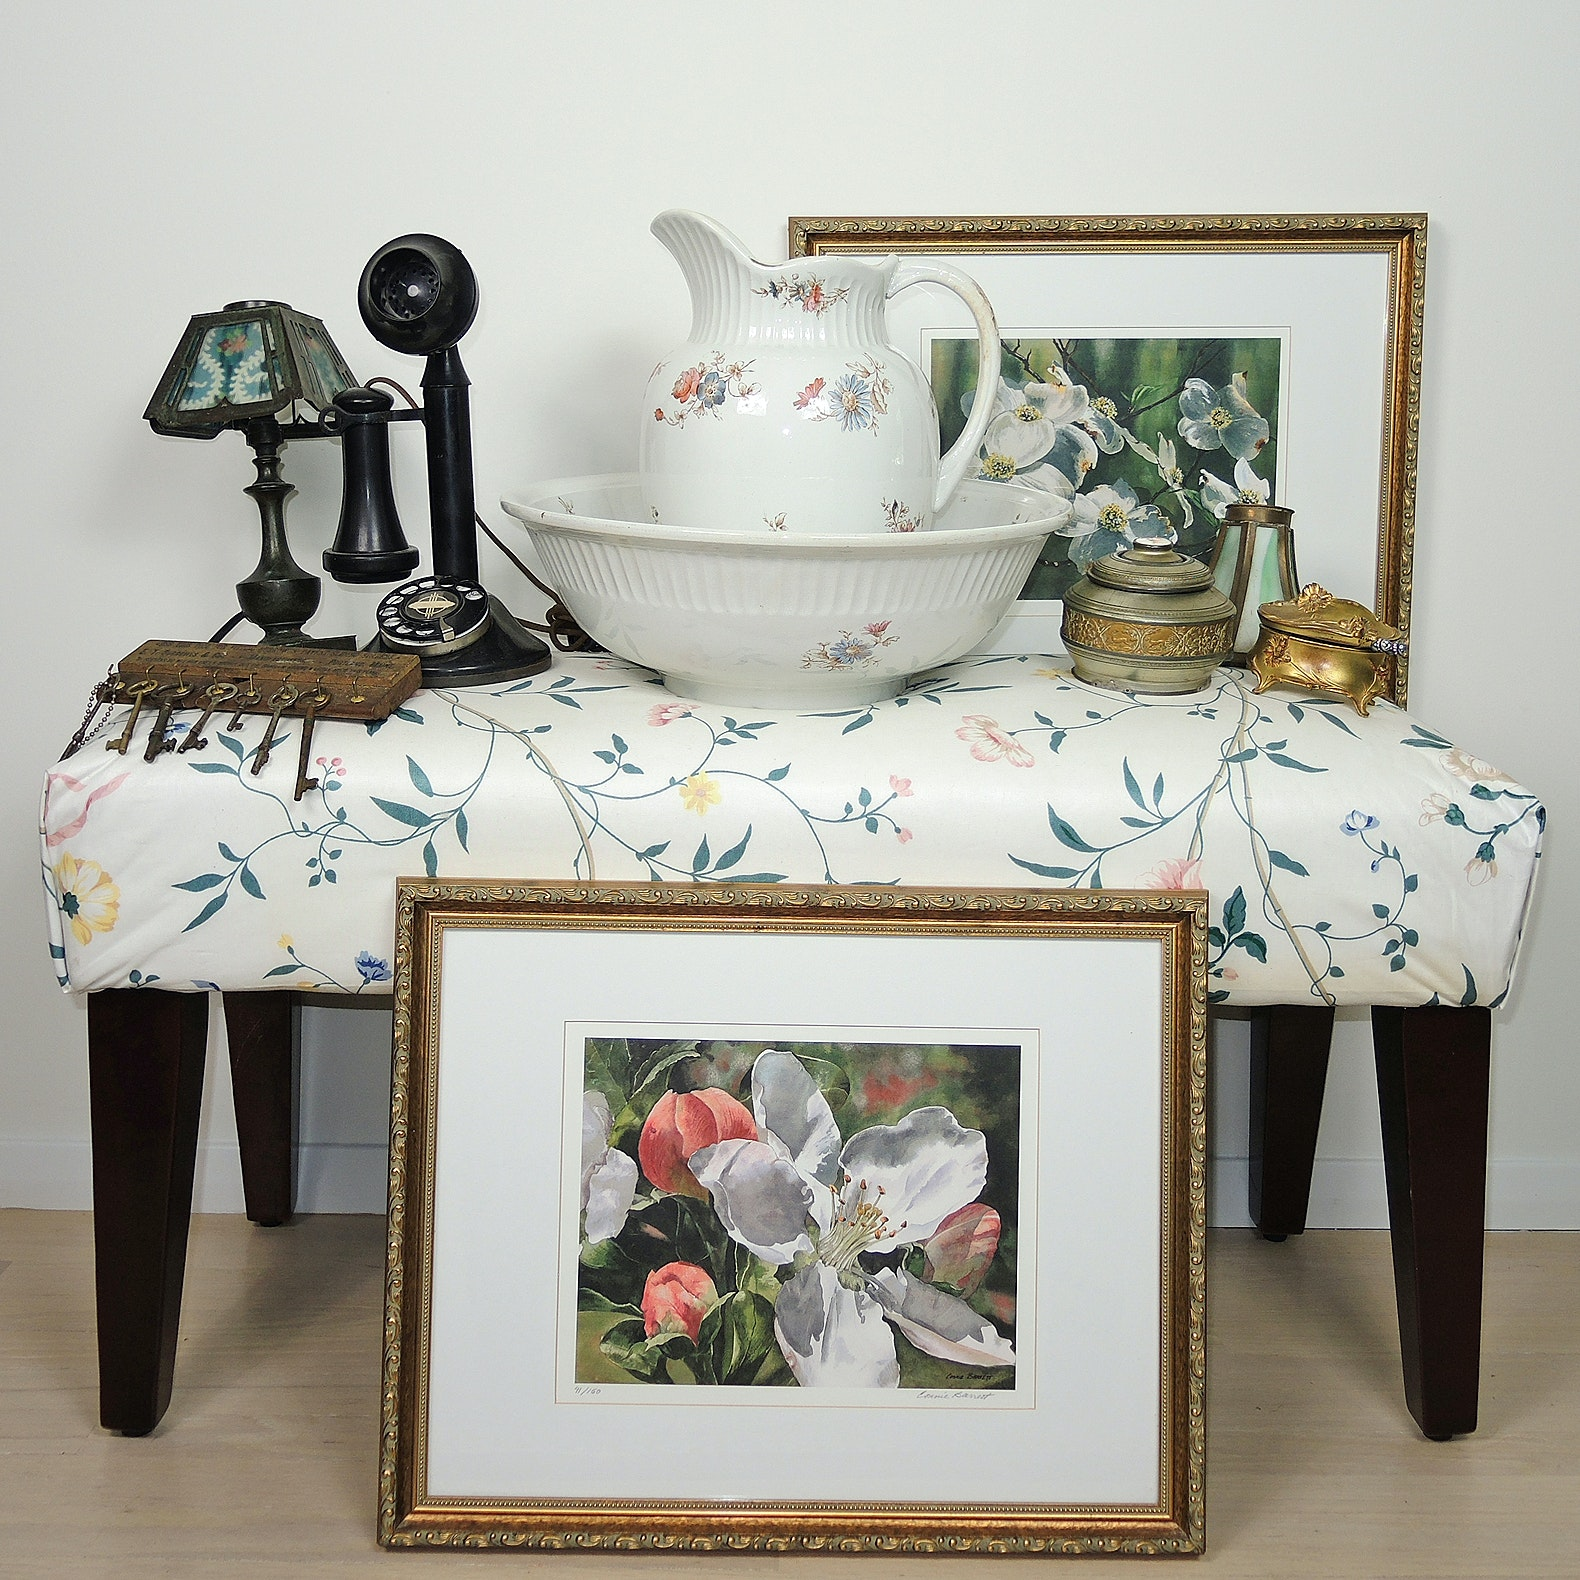 Bedroom Bench, Wash Basin with Pitcher, Floral Art and Antique Decor